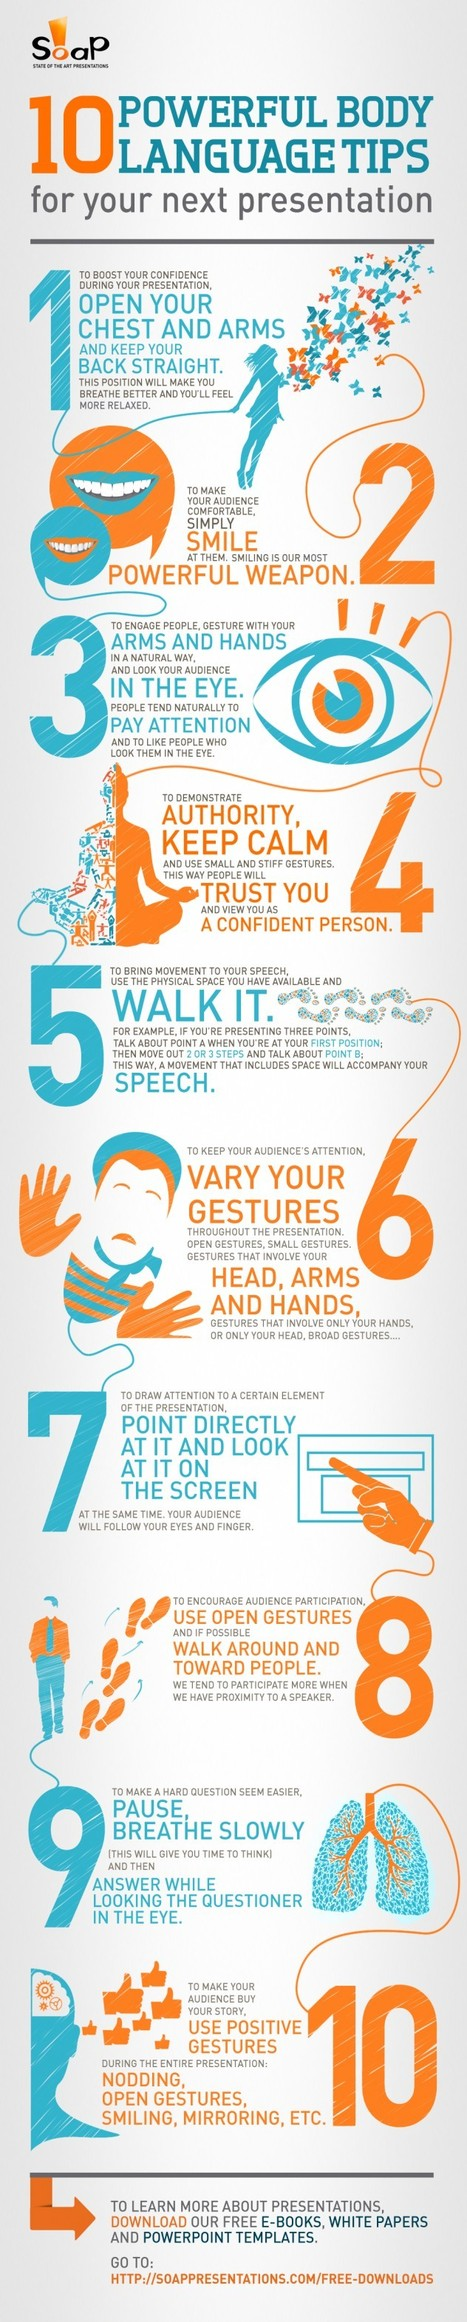 10 Powerful Body Language Tips for your next Presentation | Learning Tools Today | Scoop.it